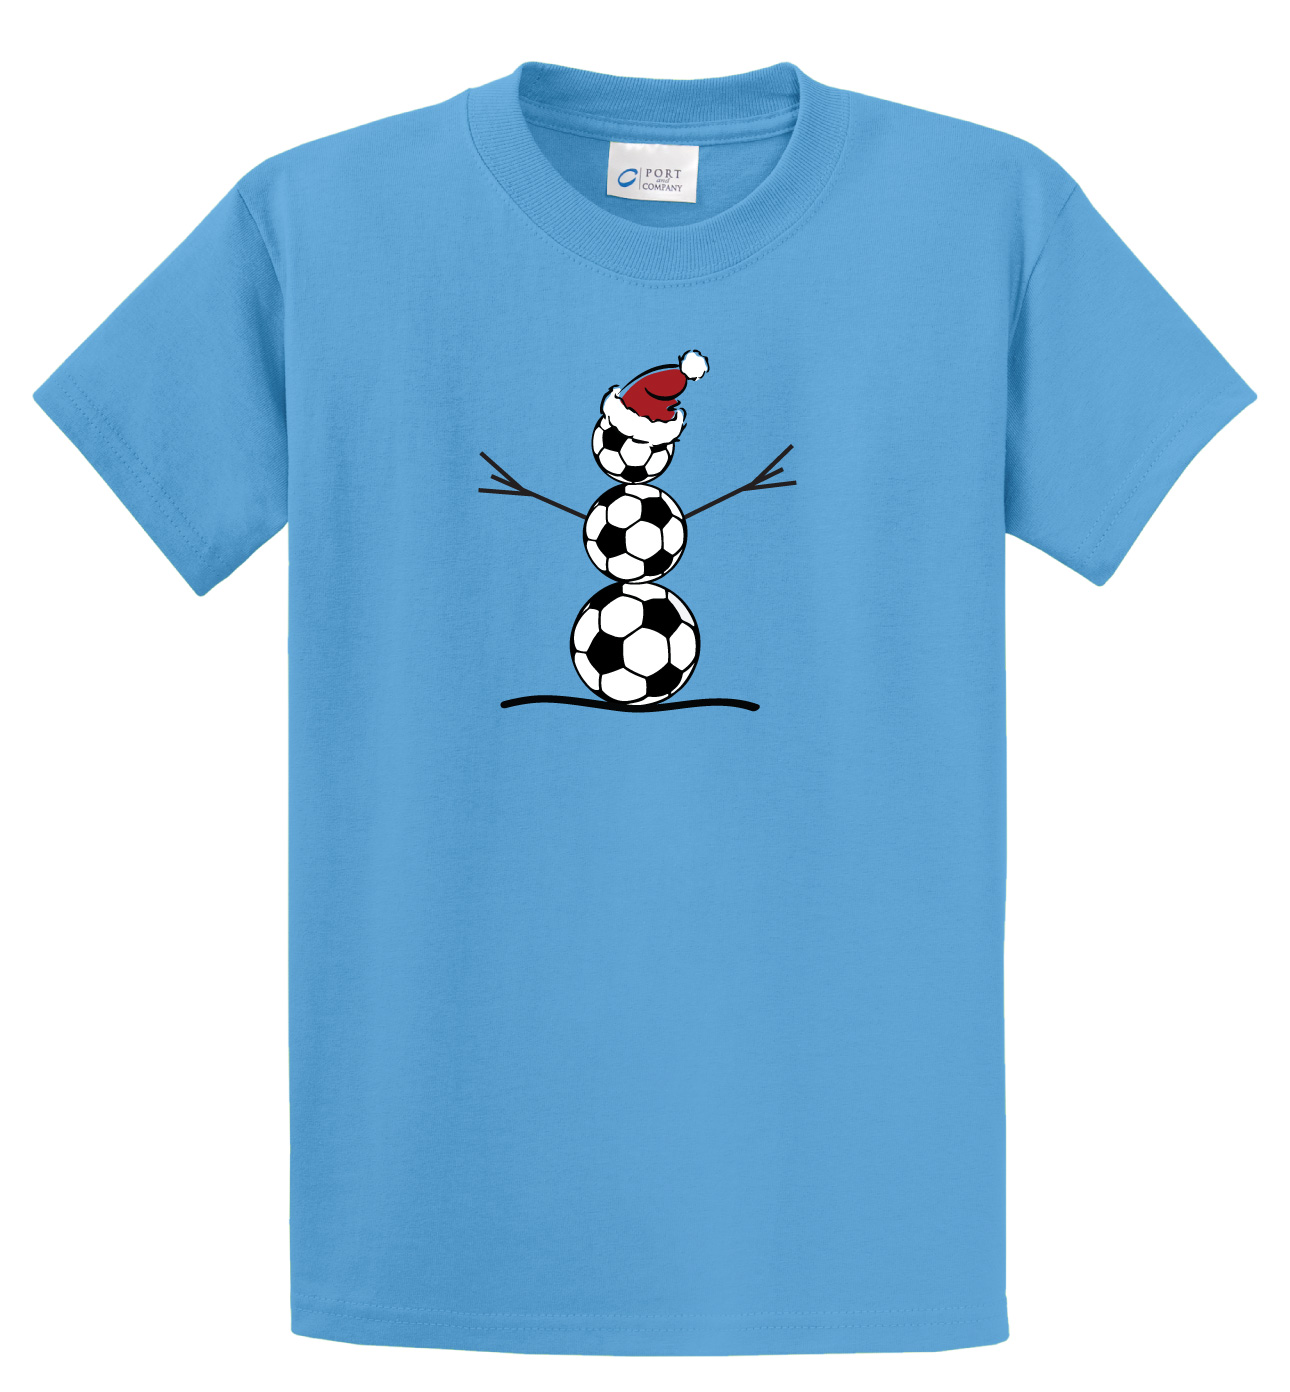 Soccer Snowman t shirt by Code Four Athletics in aqua blue